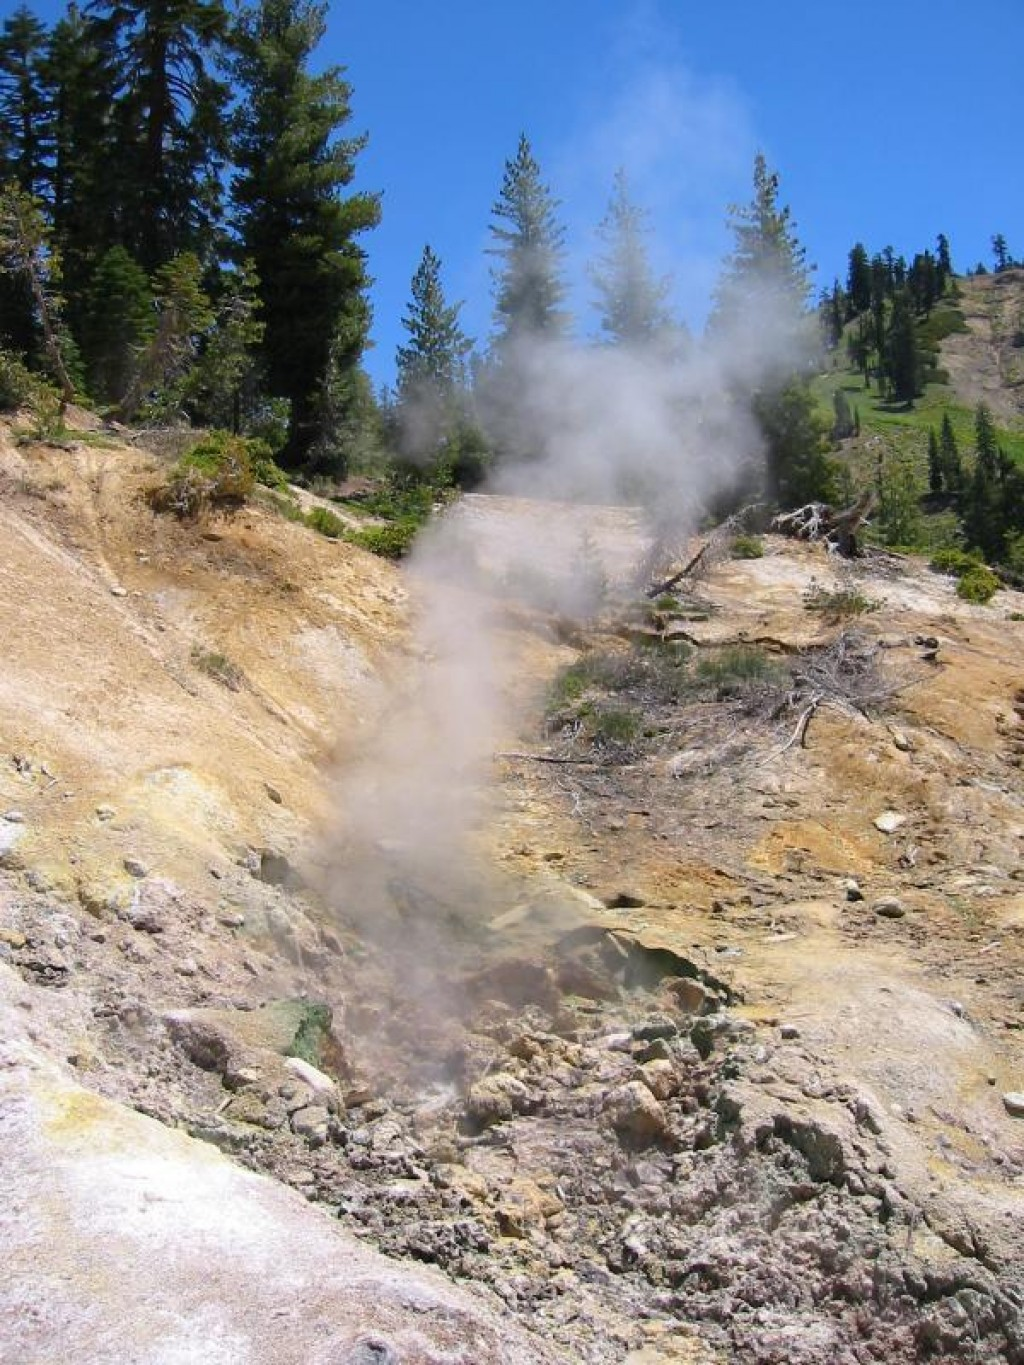 Mount Lassen is a region with a lot of geothermal activity.